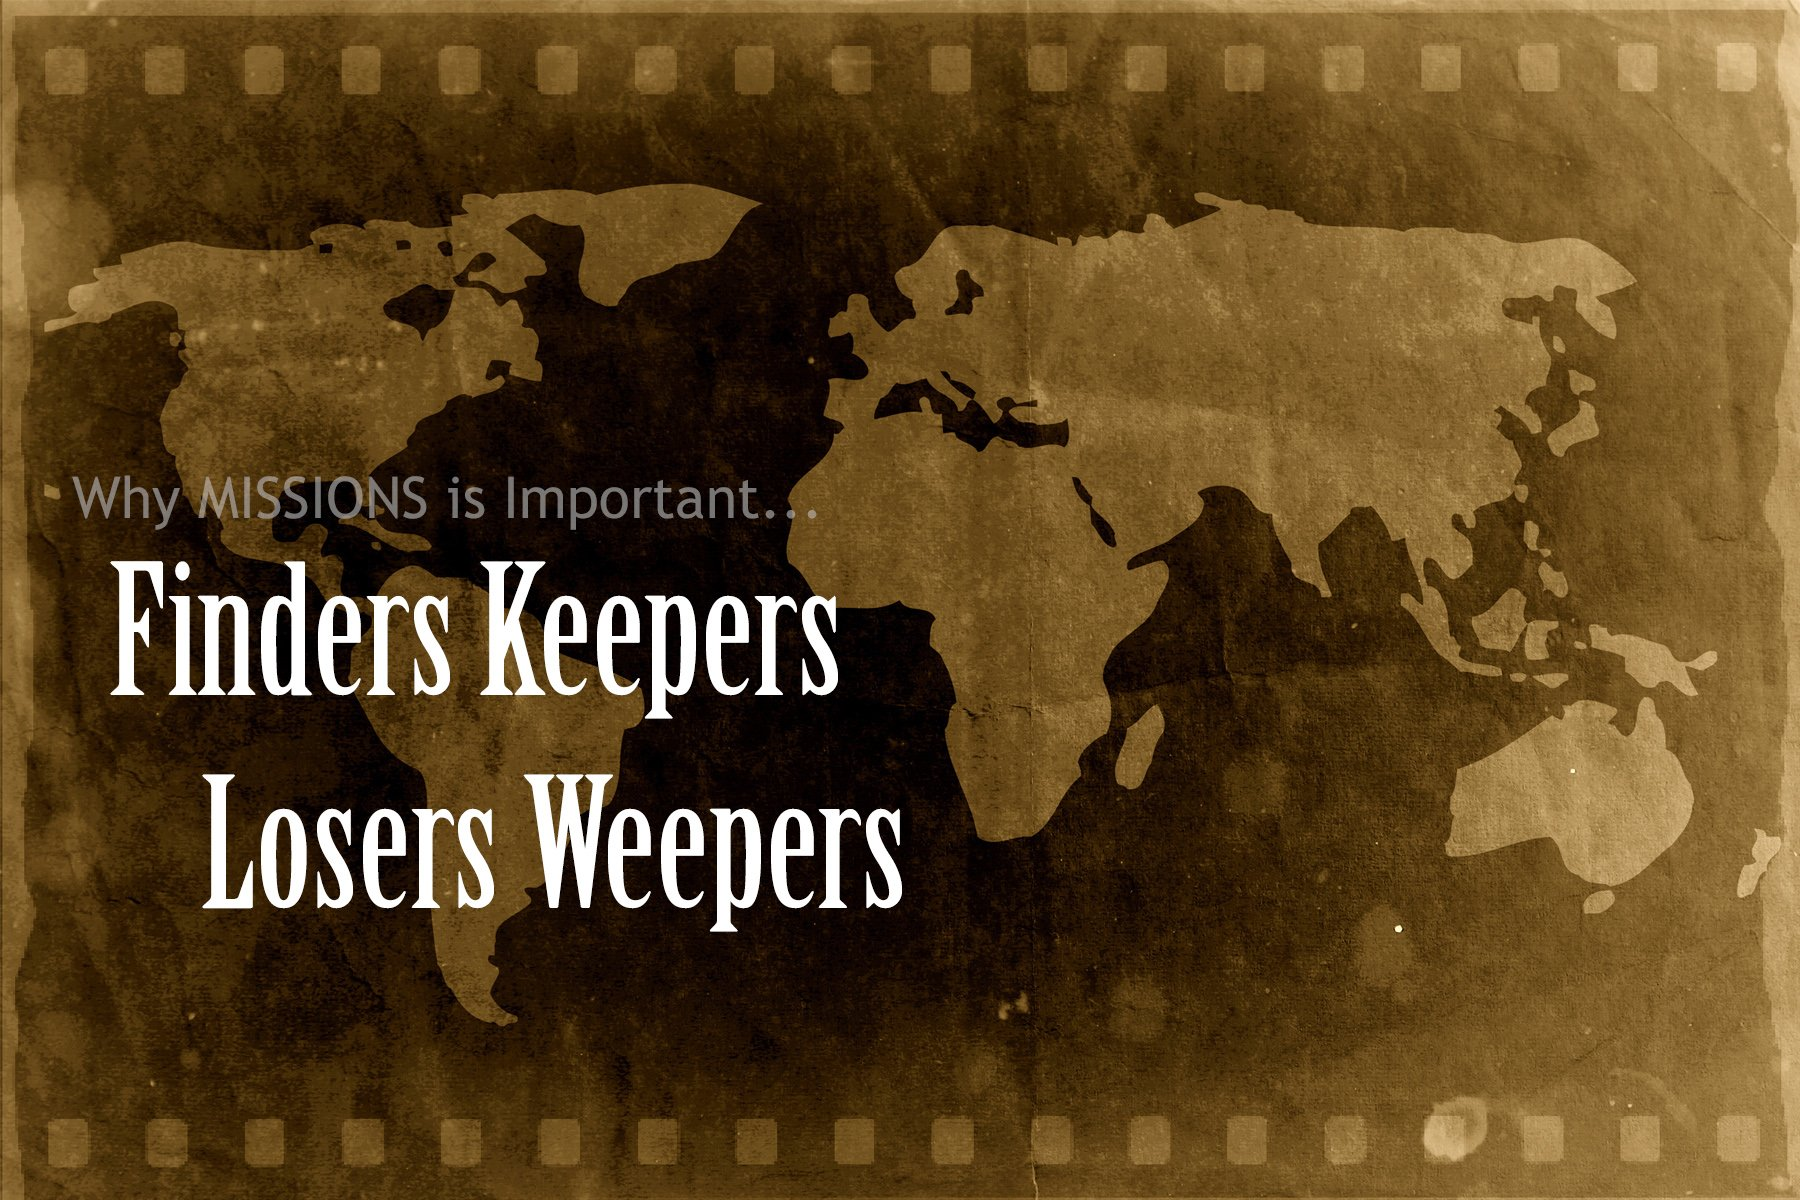 Finders Keepers, Losers Weepers: Why Missions Matters